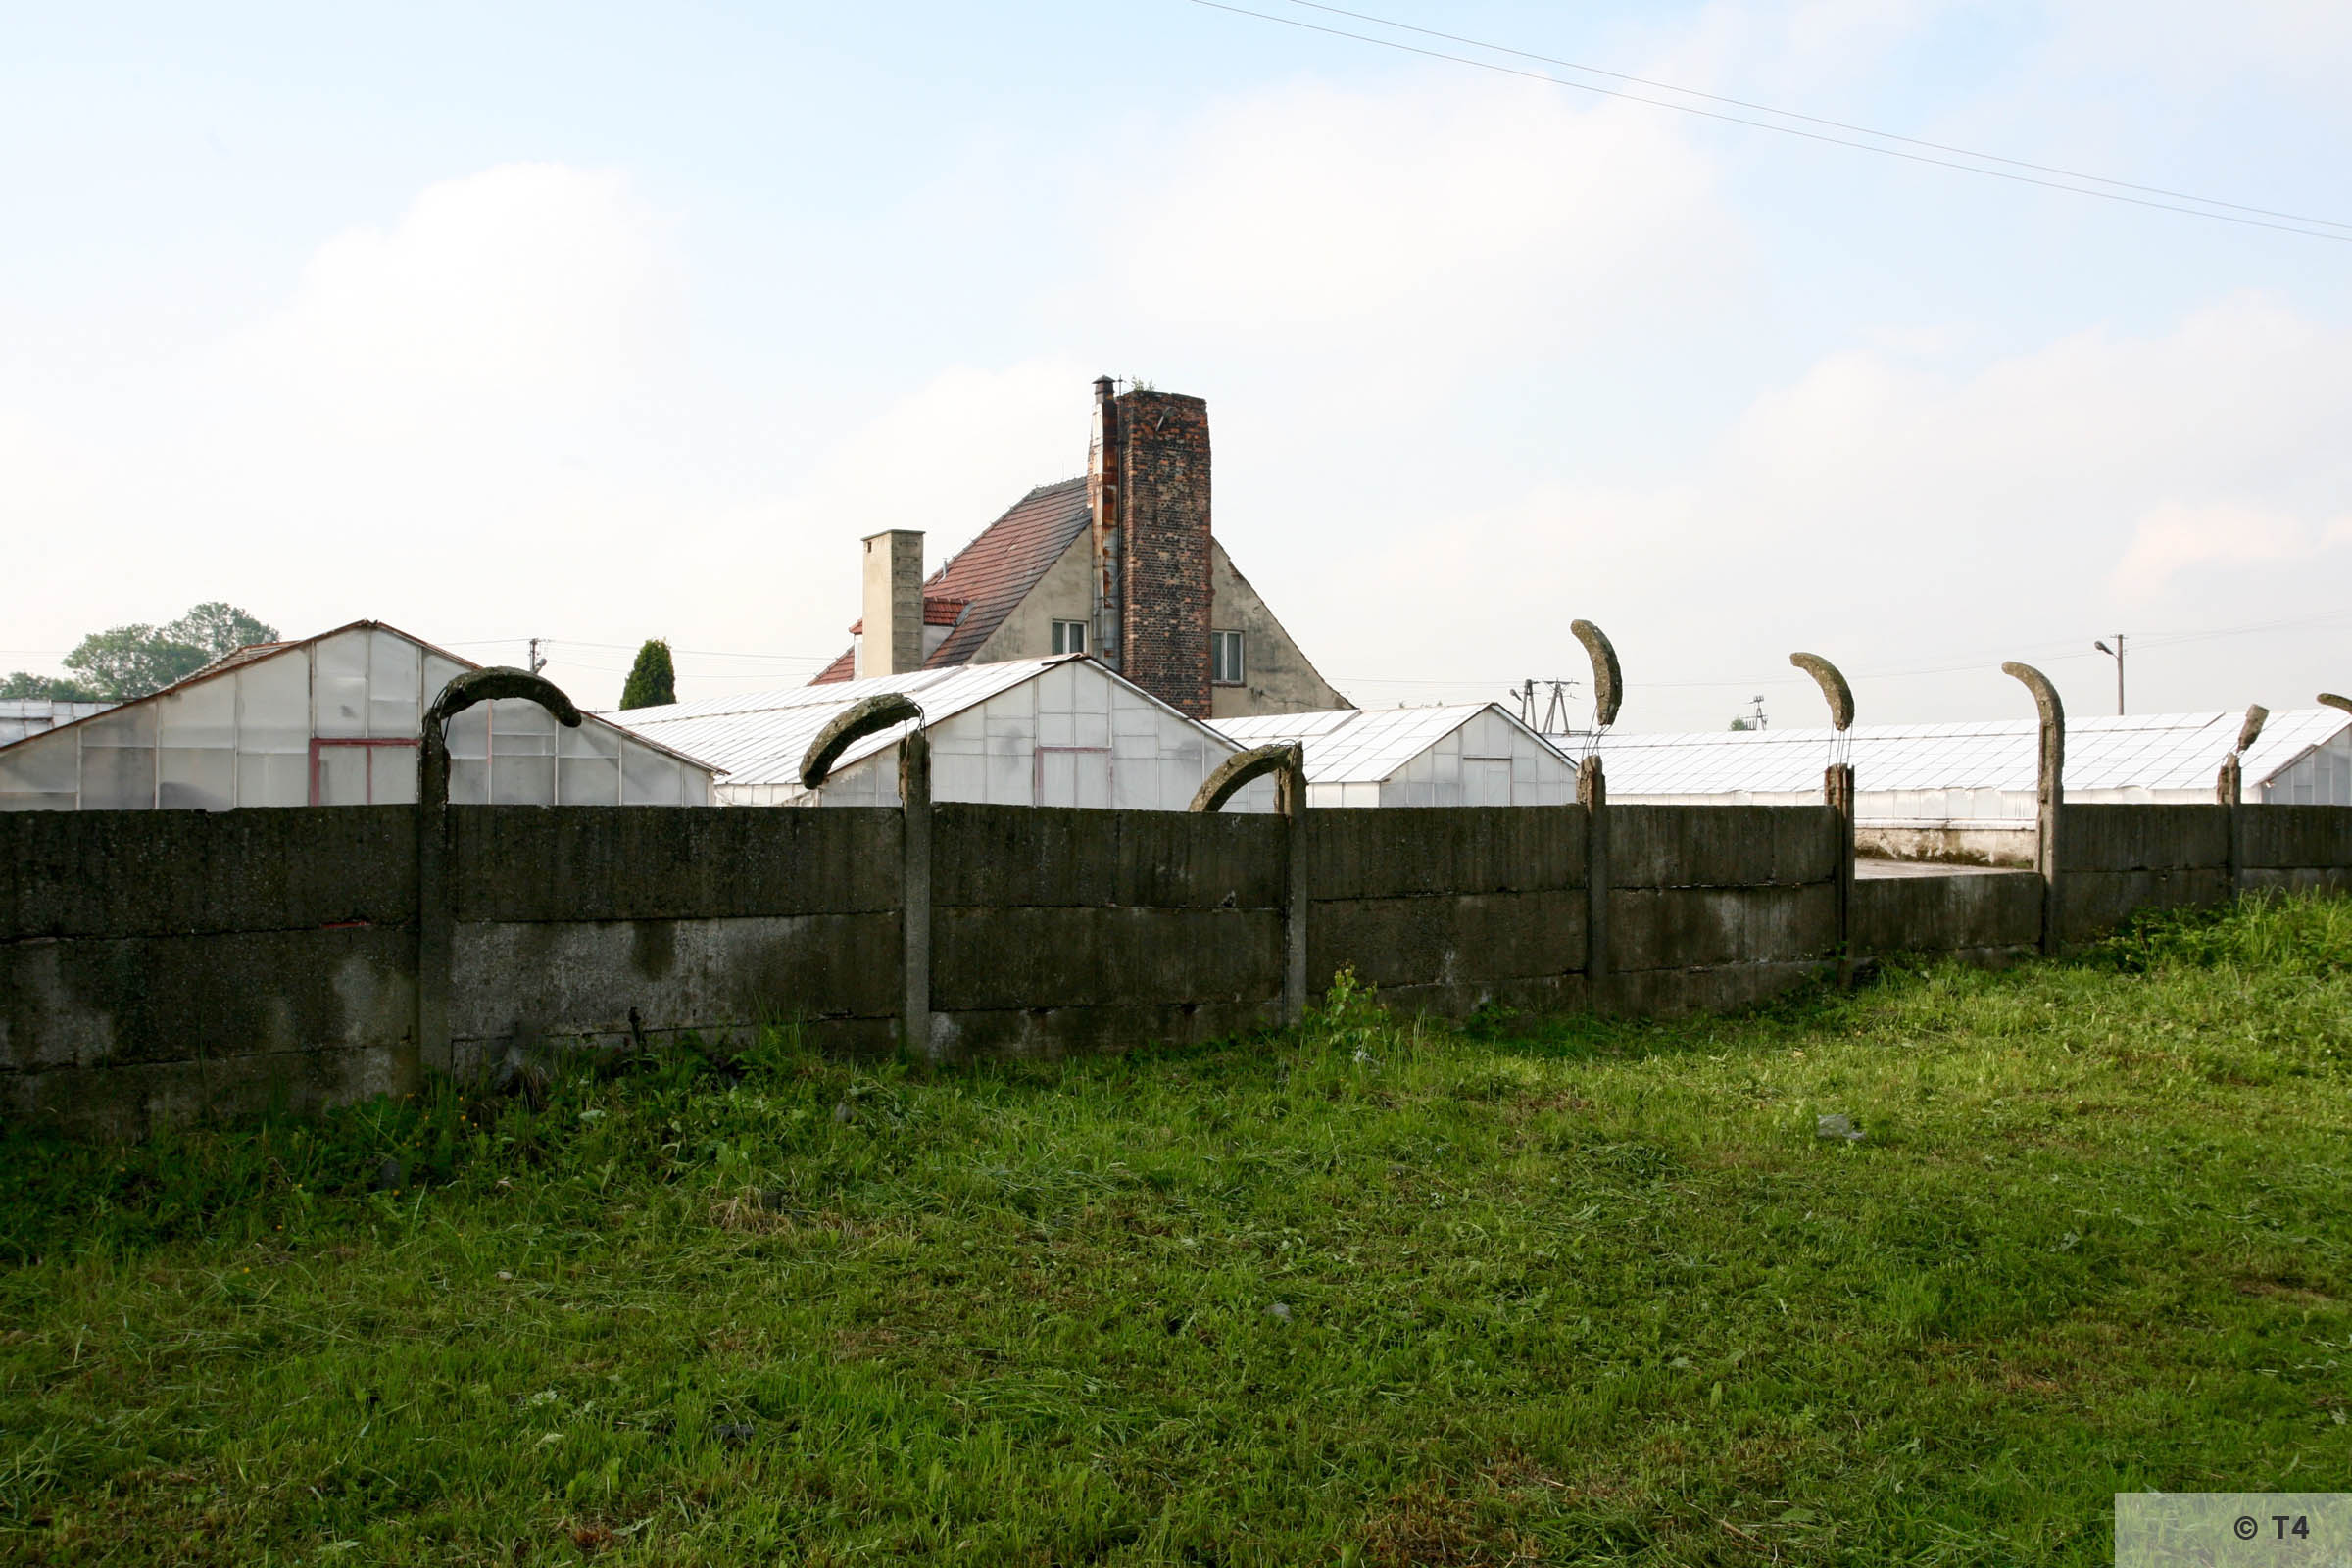 Former horticultural laboratory, new greenhouses and fence. posts. 2006 T4 5155